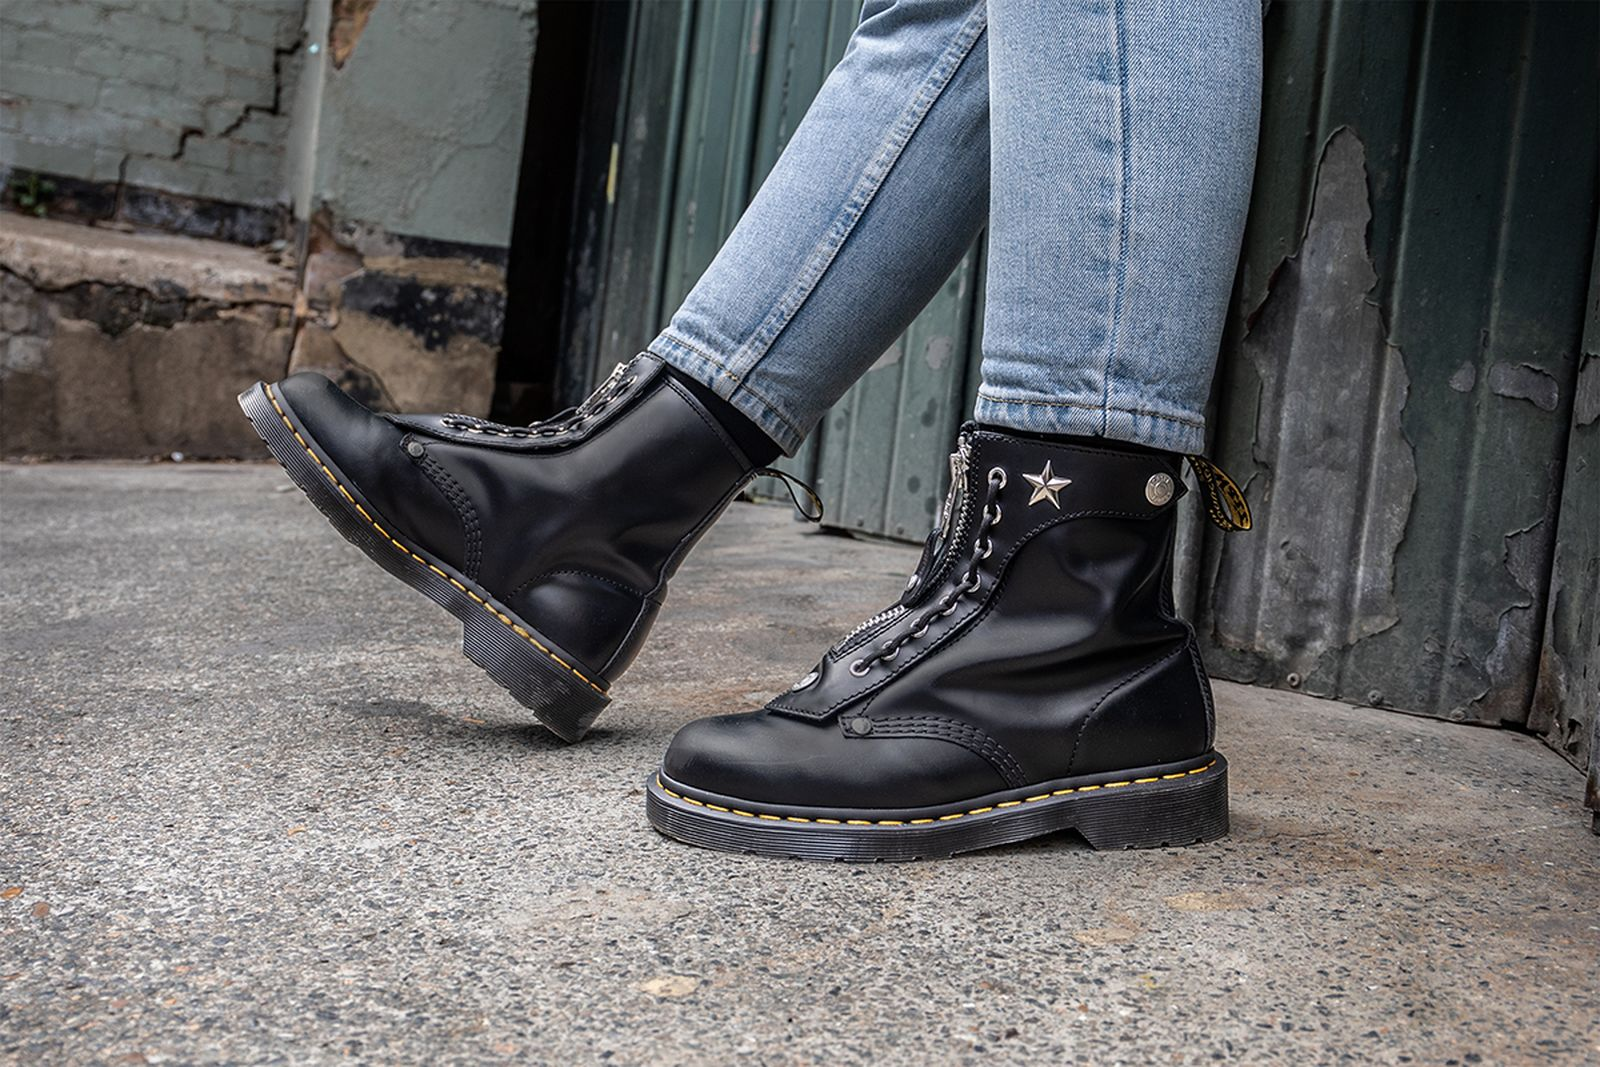 Schott NYC Dr. Martens black leather boots